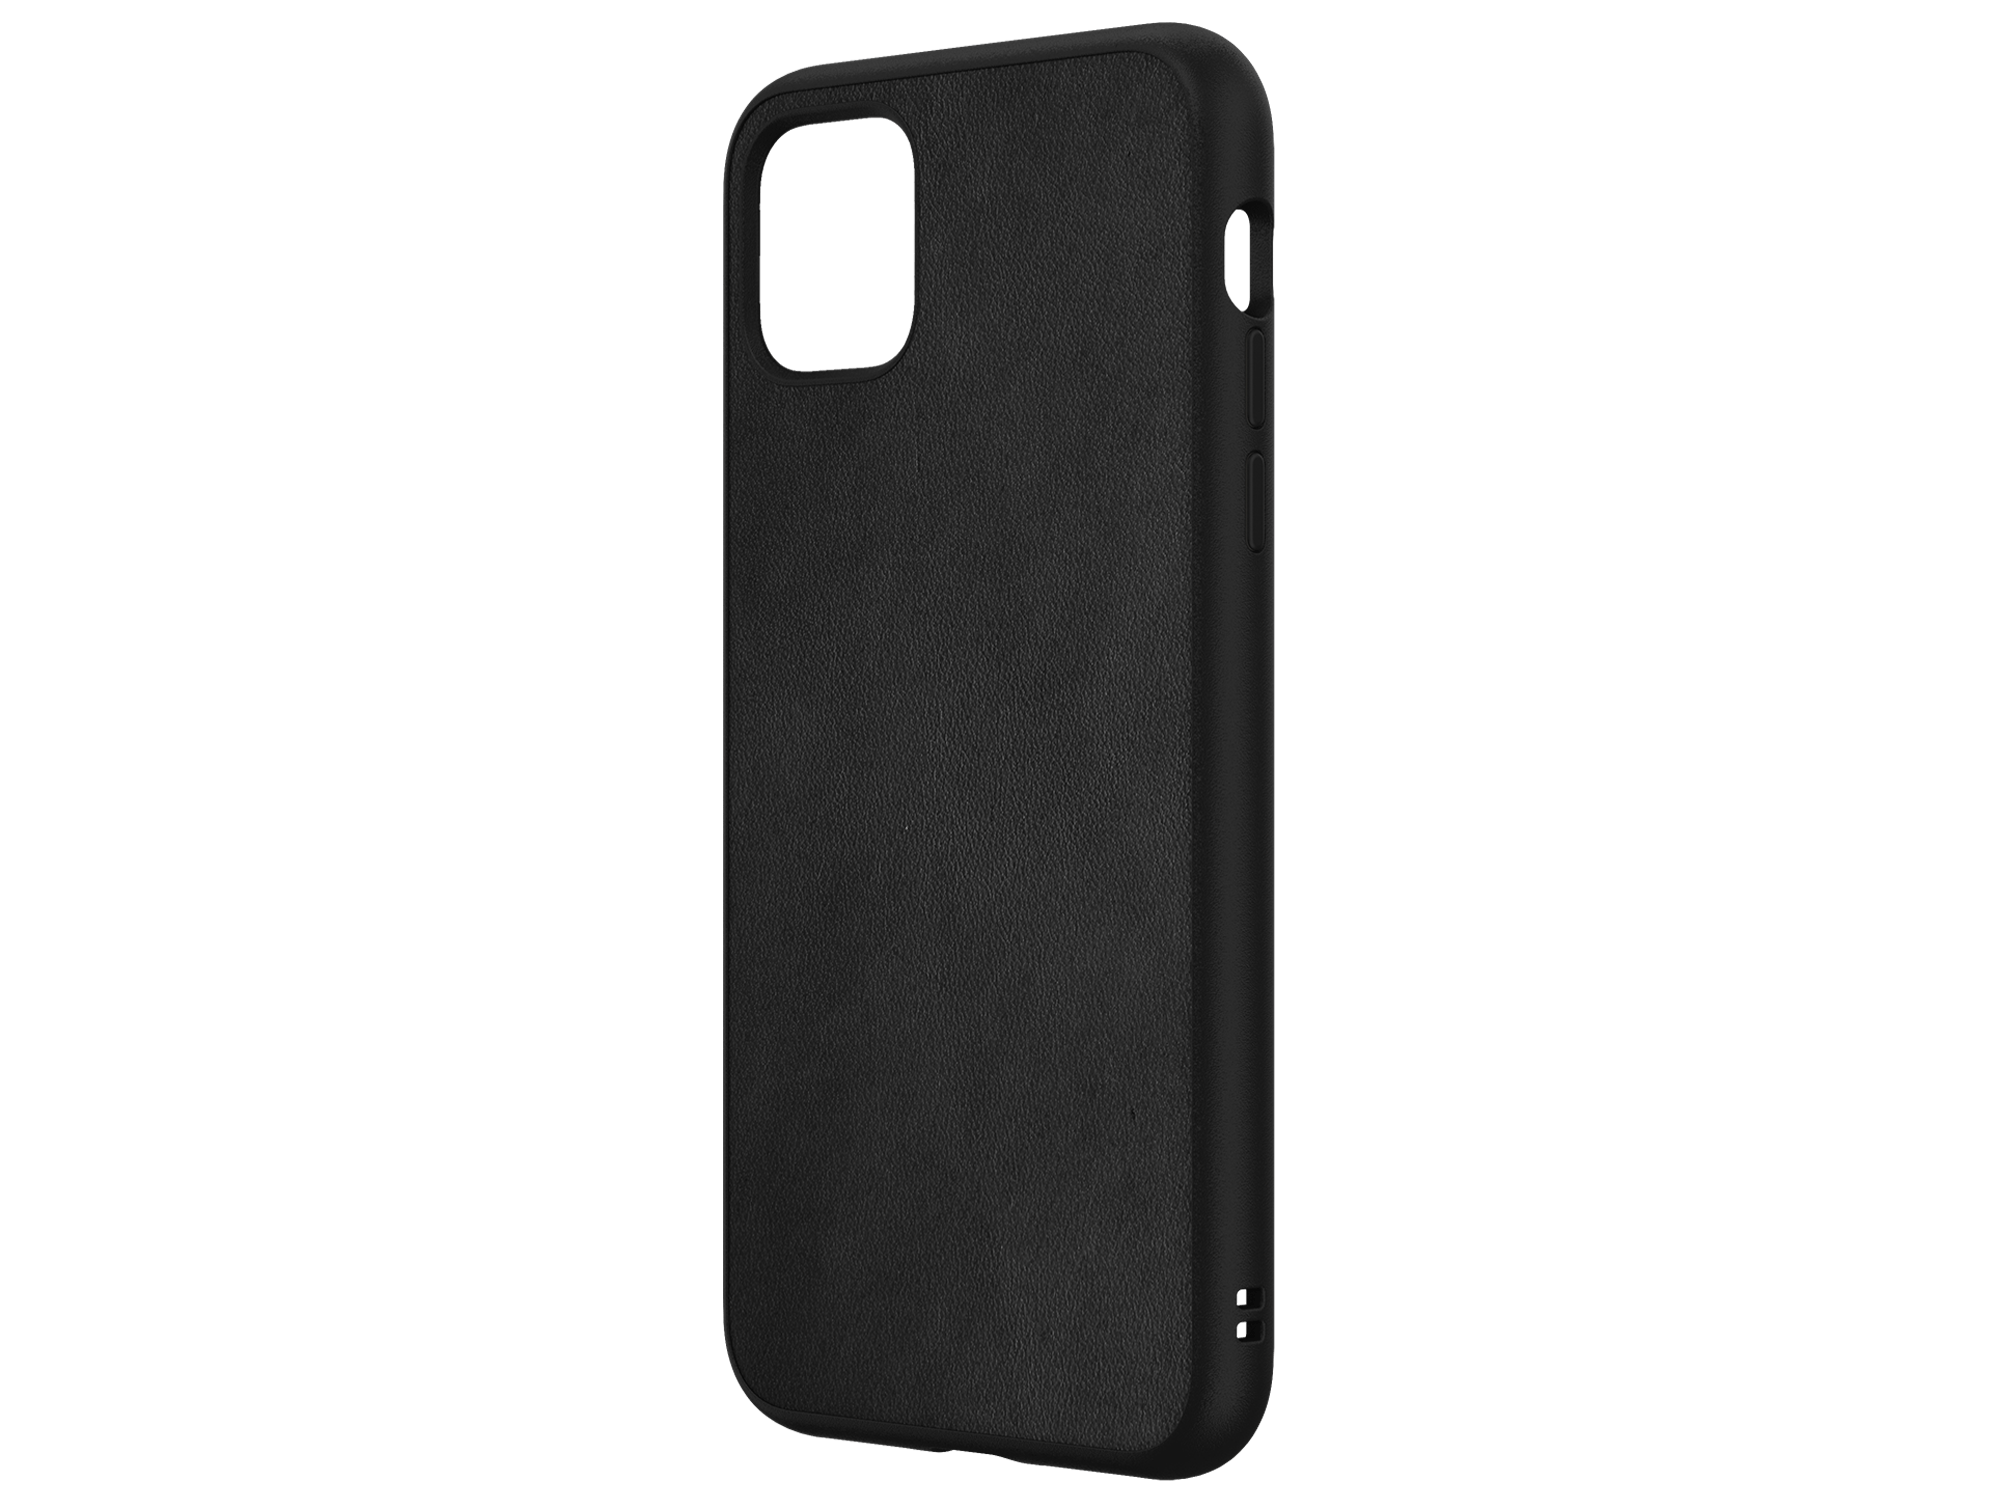 iPhone 11 Pro Max SolidSuit Case Phase2